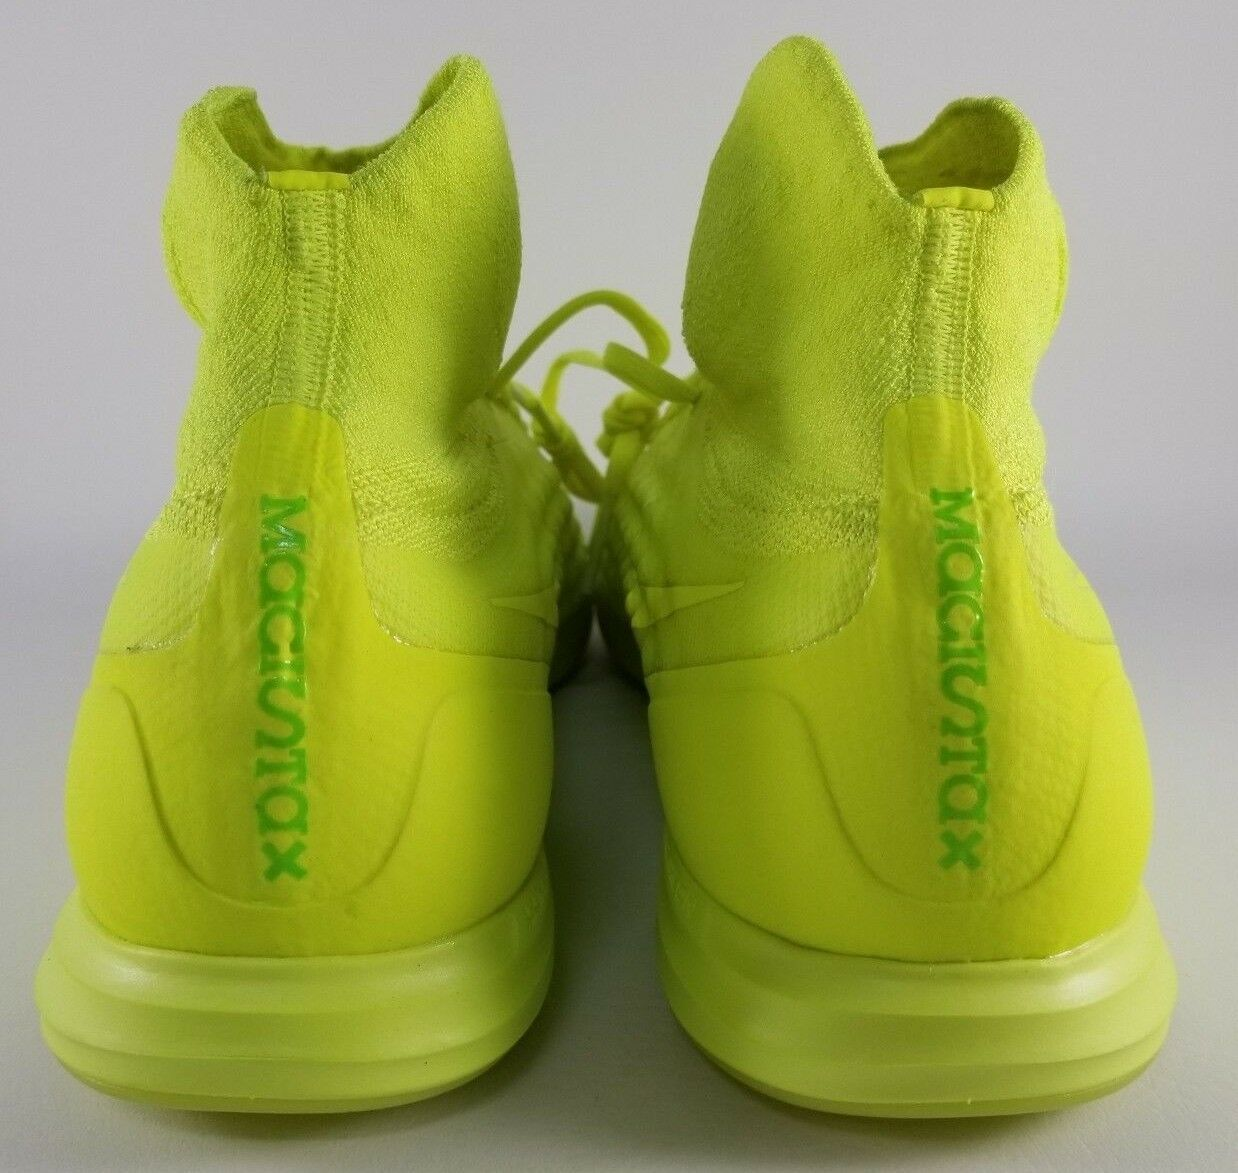 Nike MagistaX Proximo II 2 IC Indoor Soccer Shoes Size 11 Mens Cleat Volt Yellow